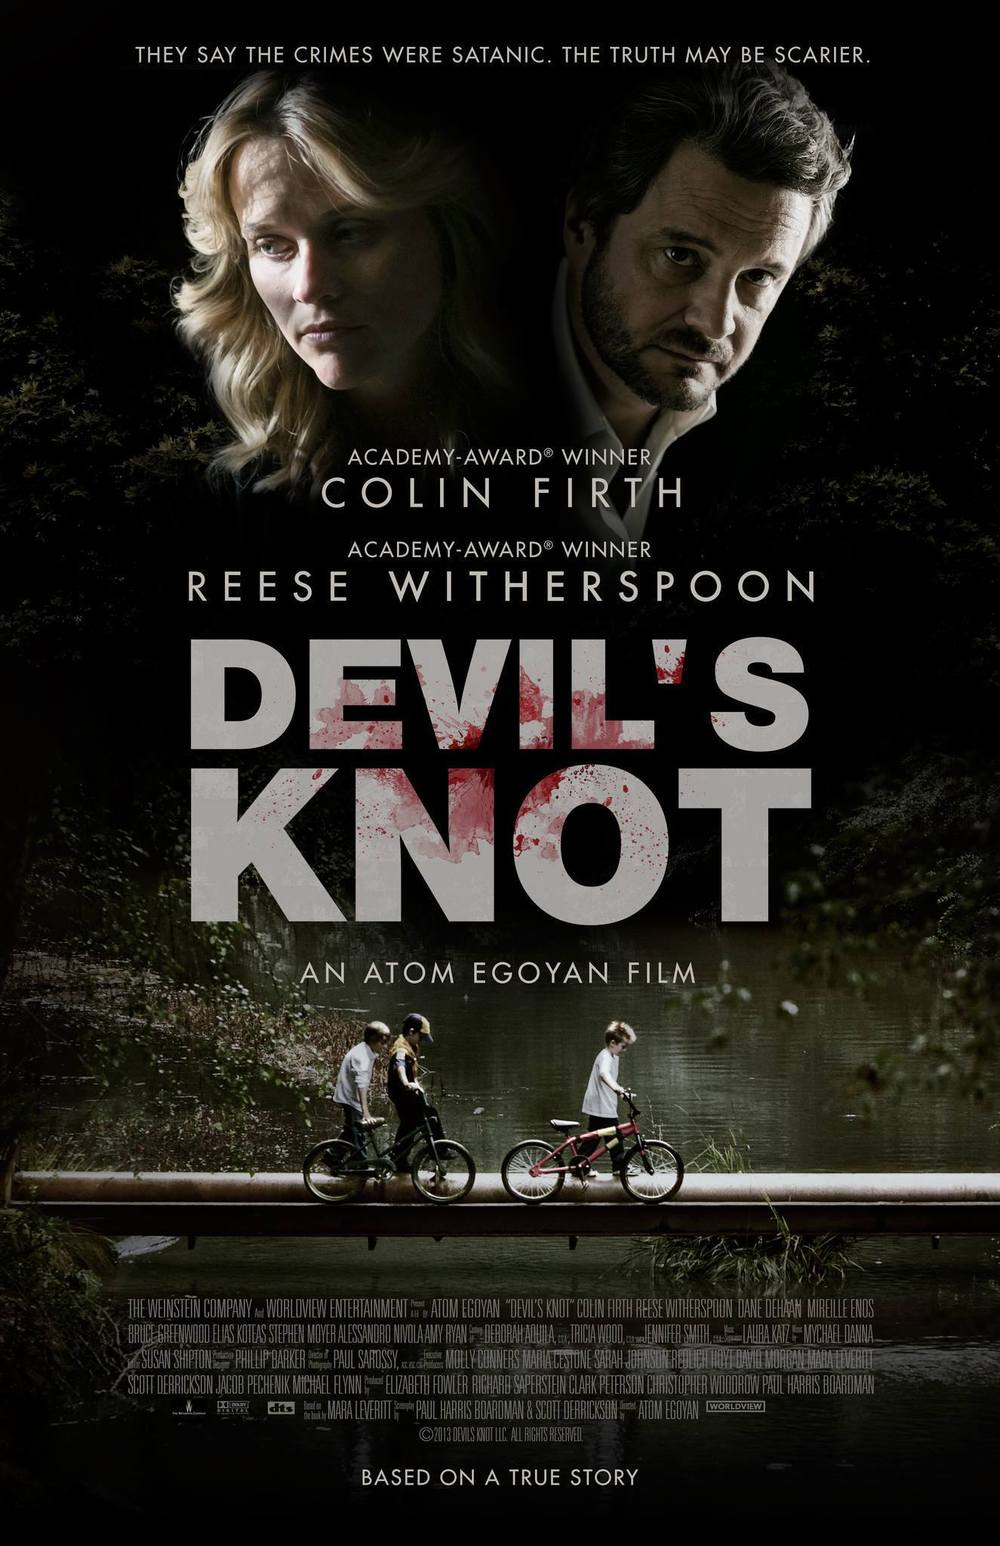 devils knot Director atom egoyan's devil's knot arrives somewhat anticlimactically for those  who have been gripped by the lurid true crime tale over the.